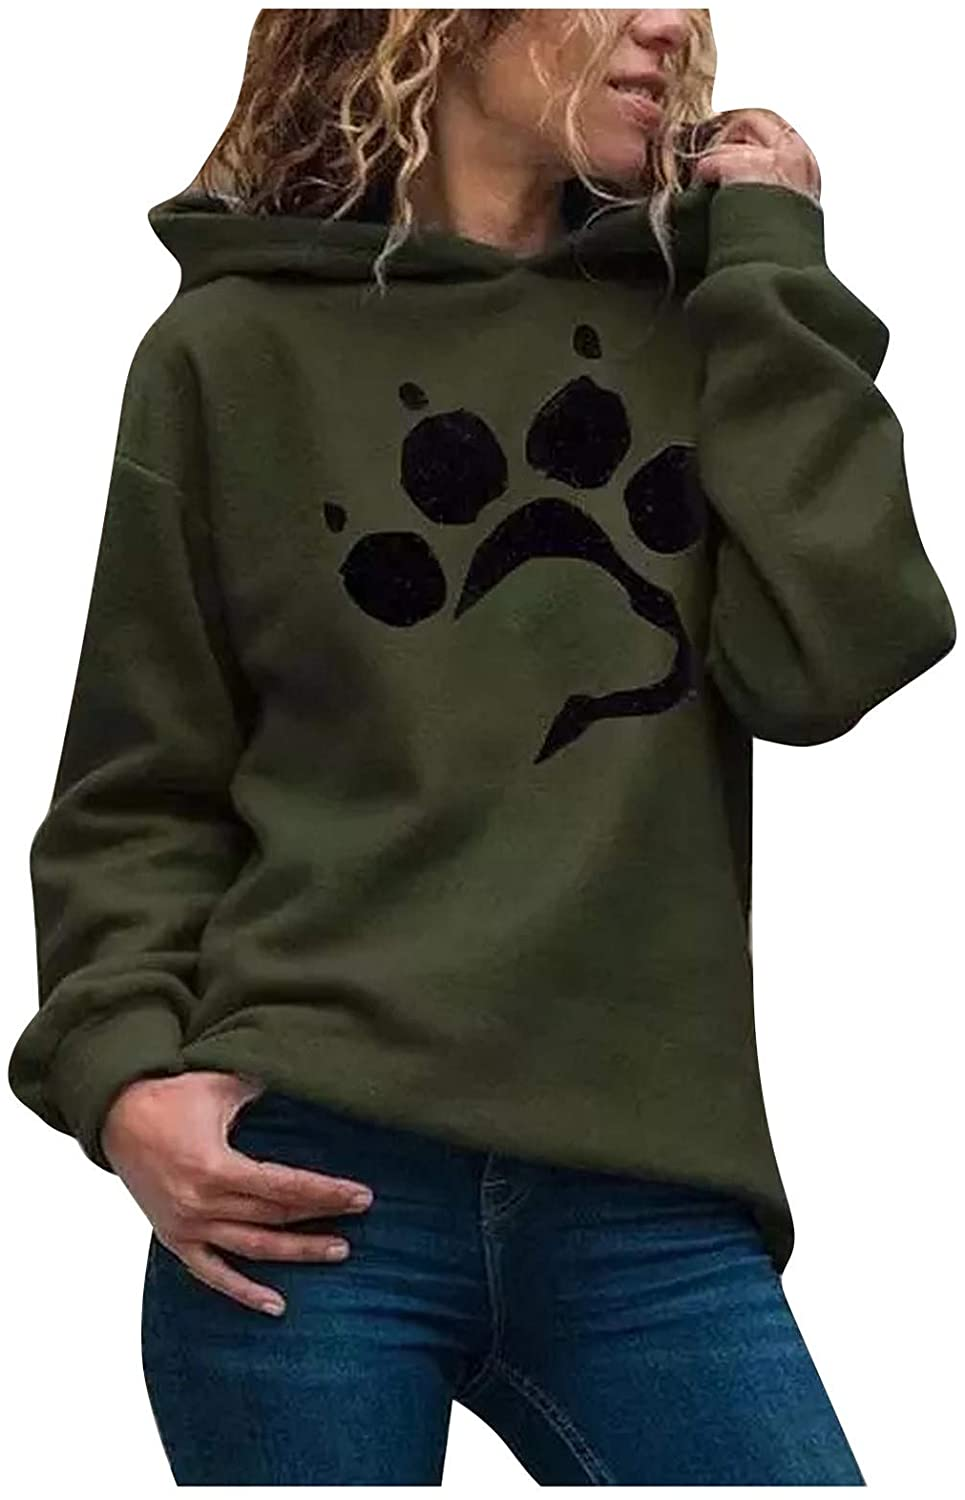 Women's Cat paw Printed Hoodie Winter Warm Casual Loose Hooded Sweatshirt Long Sleeve Pocket Sweater(USA in Stock)